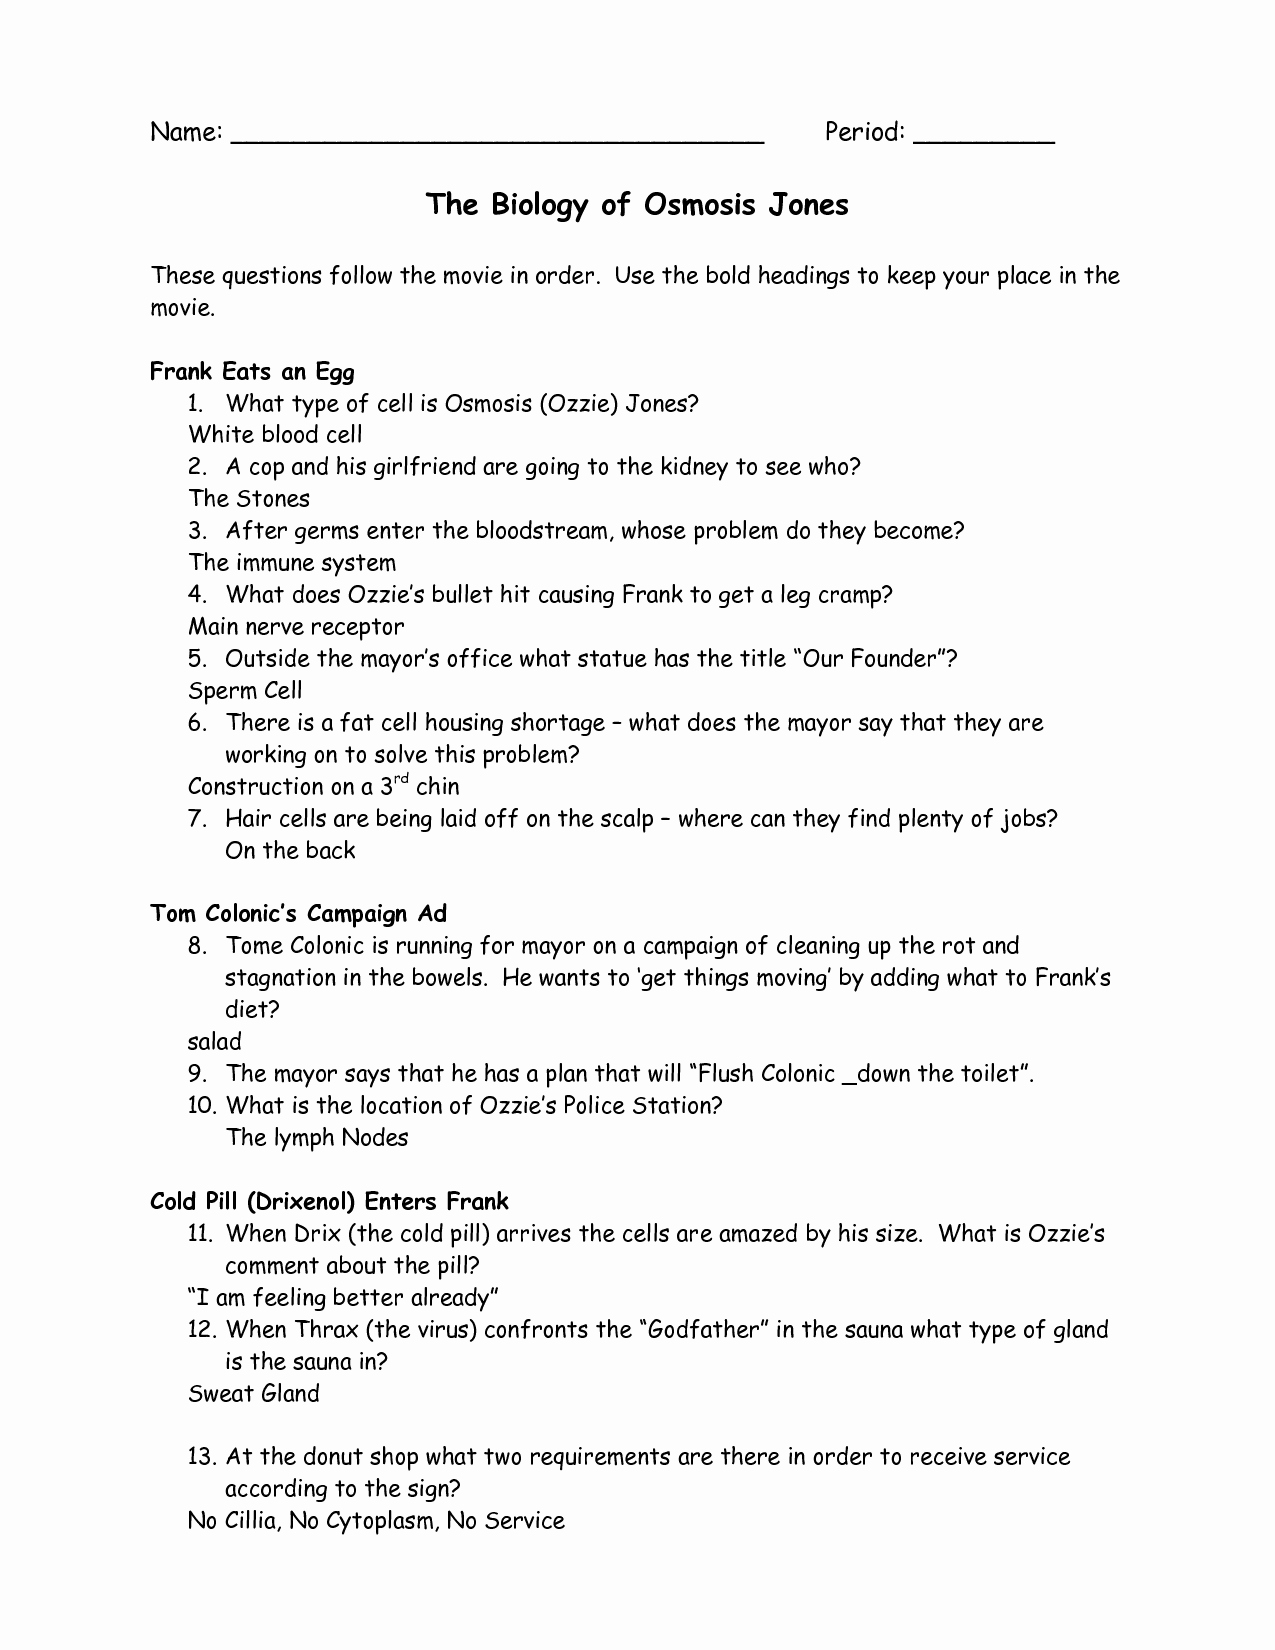 Osmosis Jones Worksheet Answer Key Beautiful Osmosis Jones Worksheet Answers Quizlet